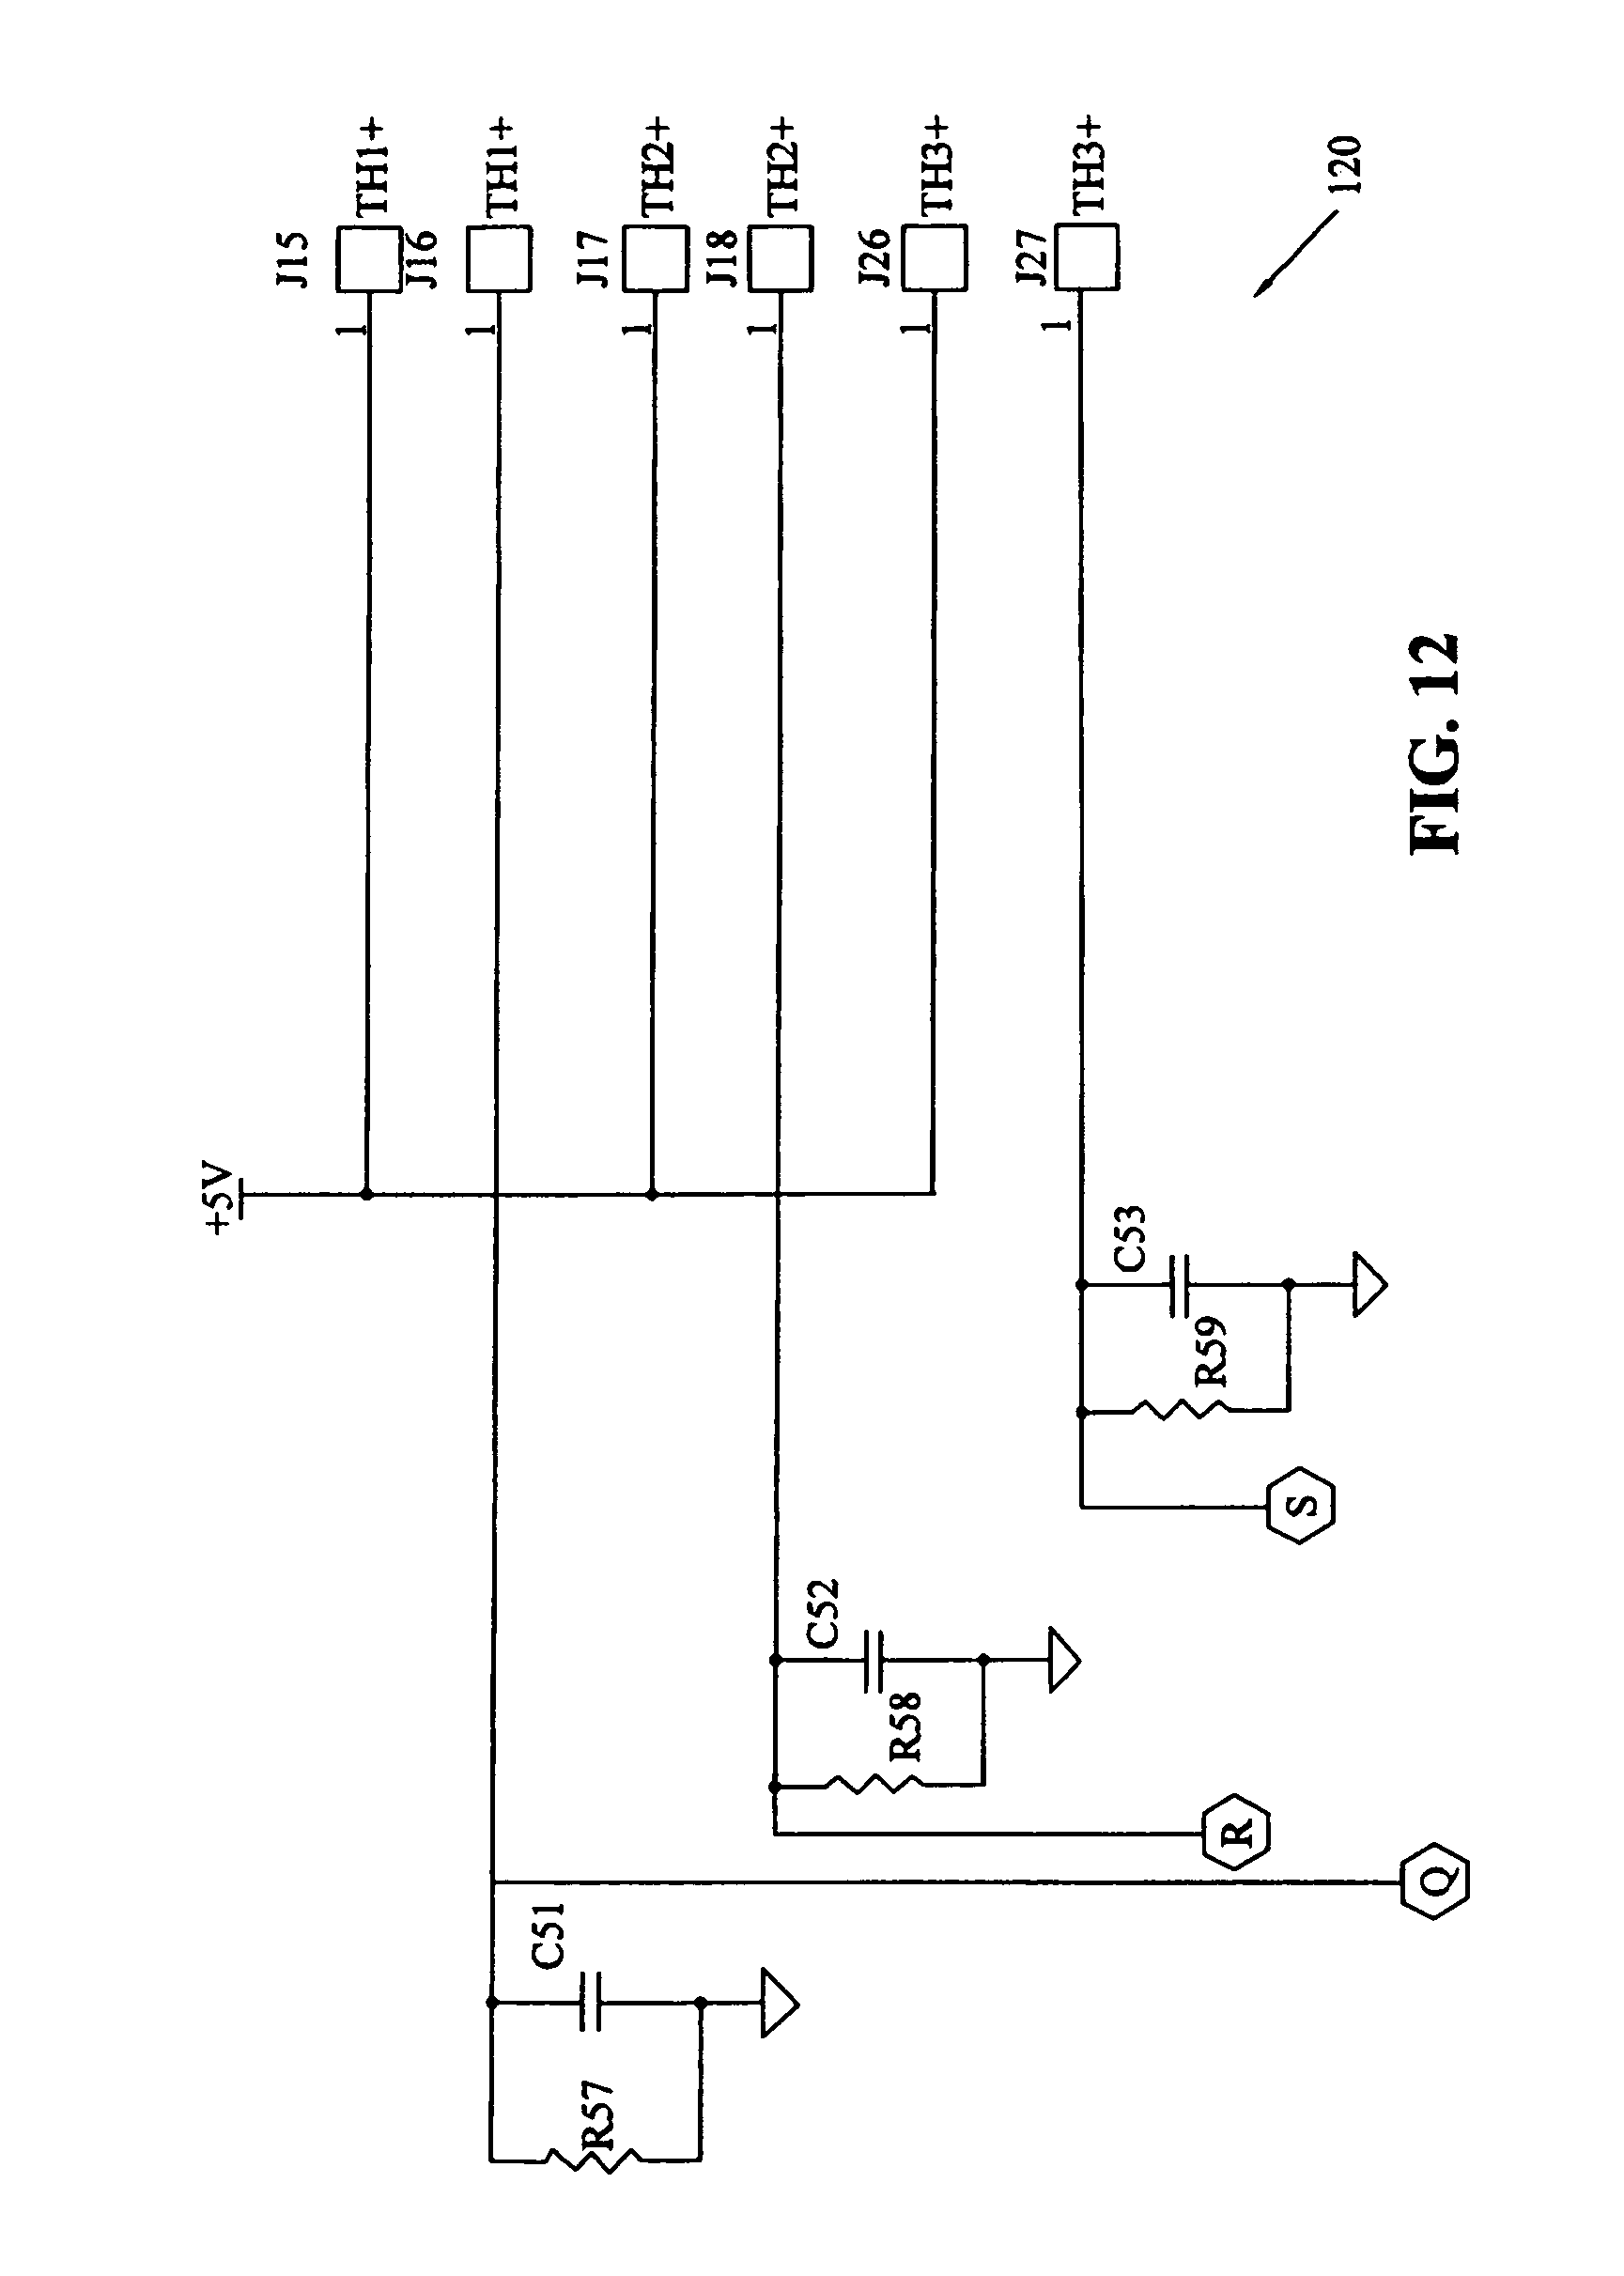 Ranco Wiring Diagrams Simple Guide About Diagram Excalibur C17 Thermostat 29 Images